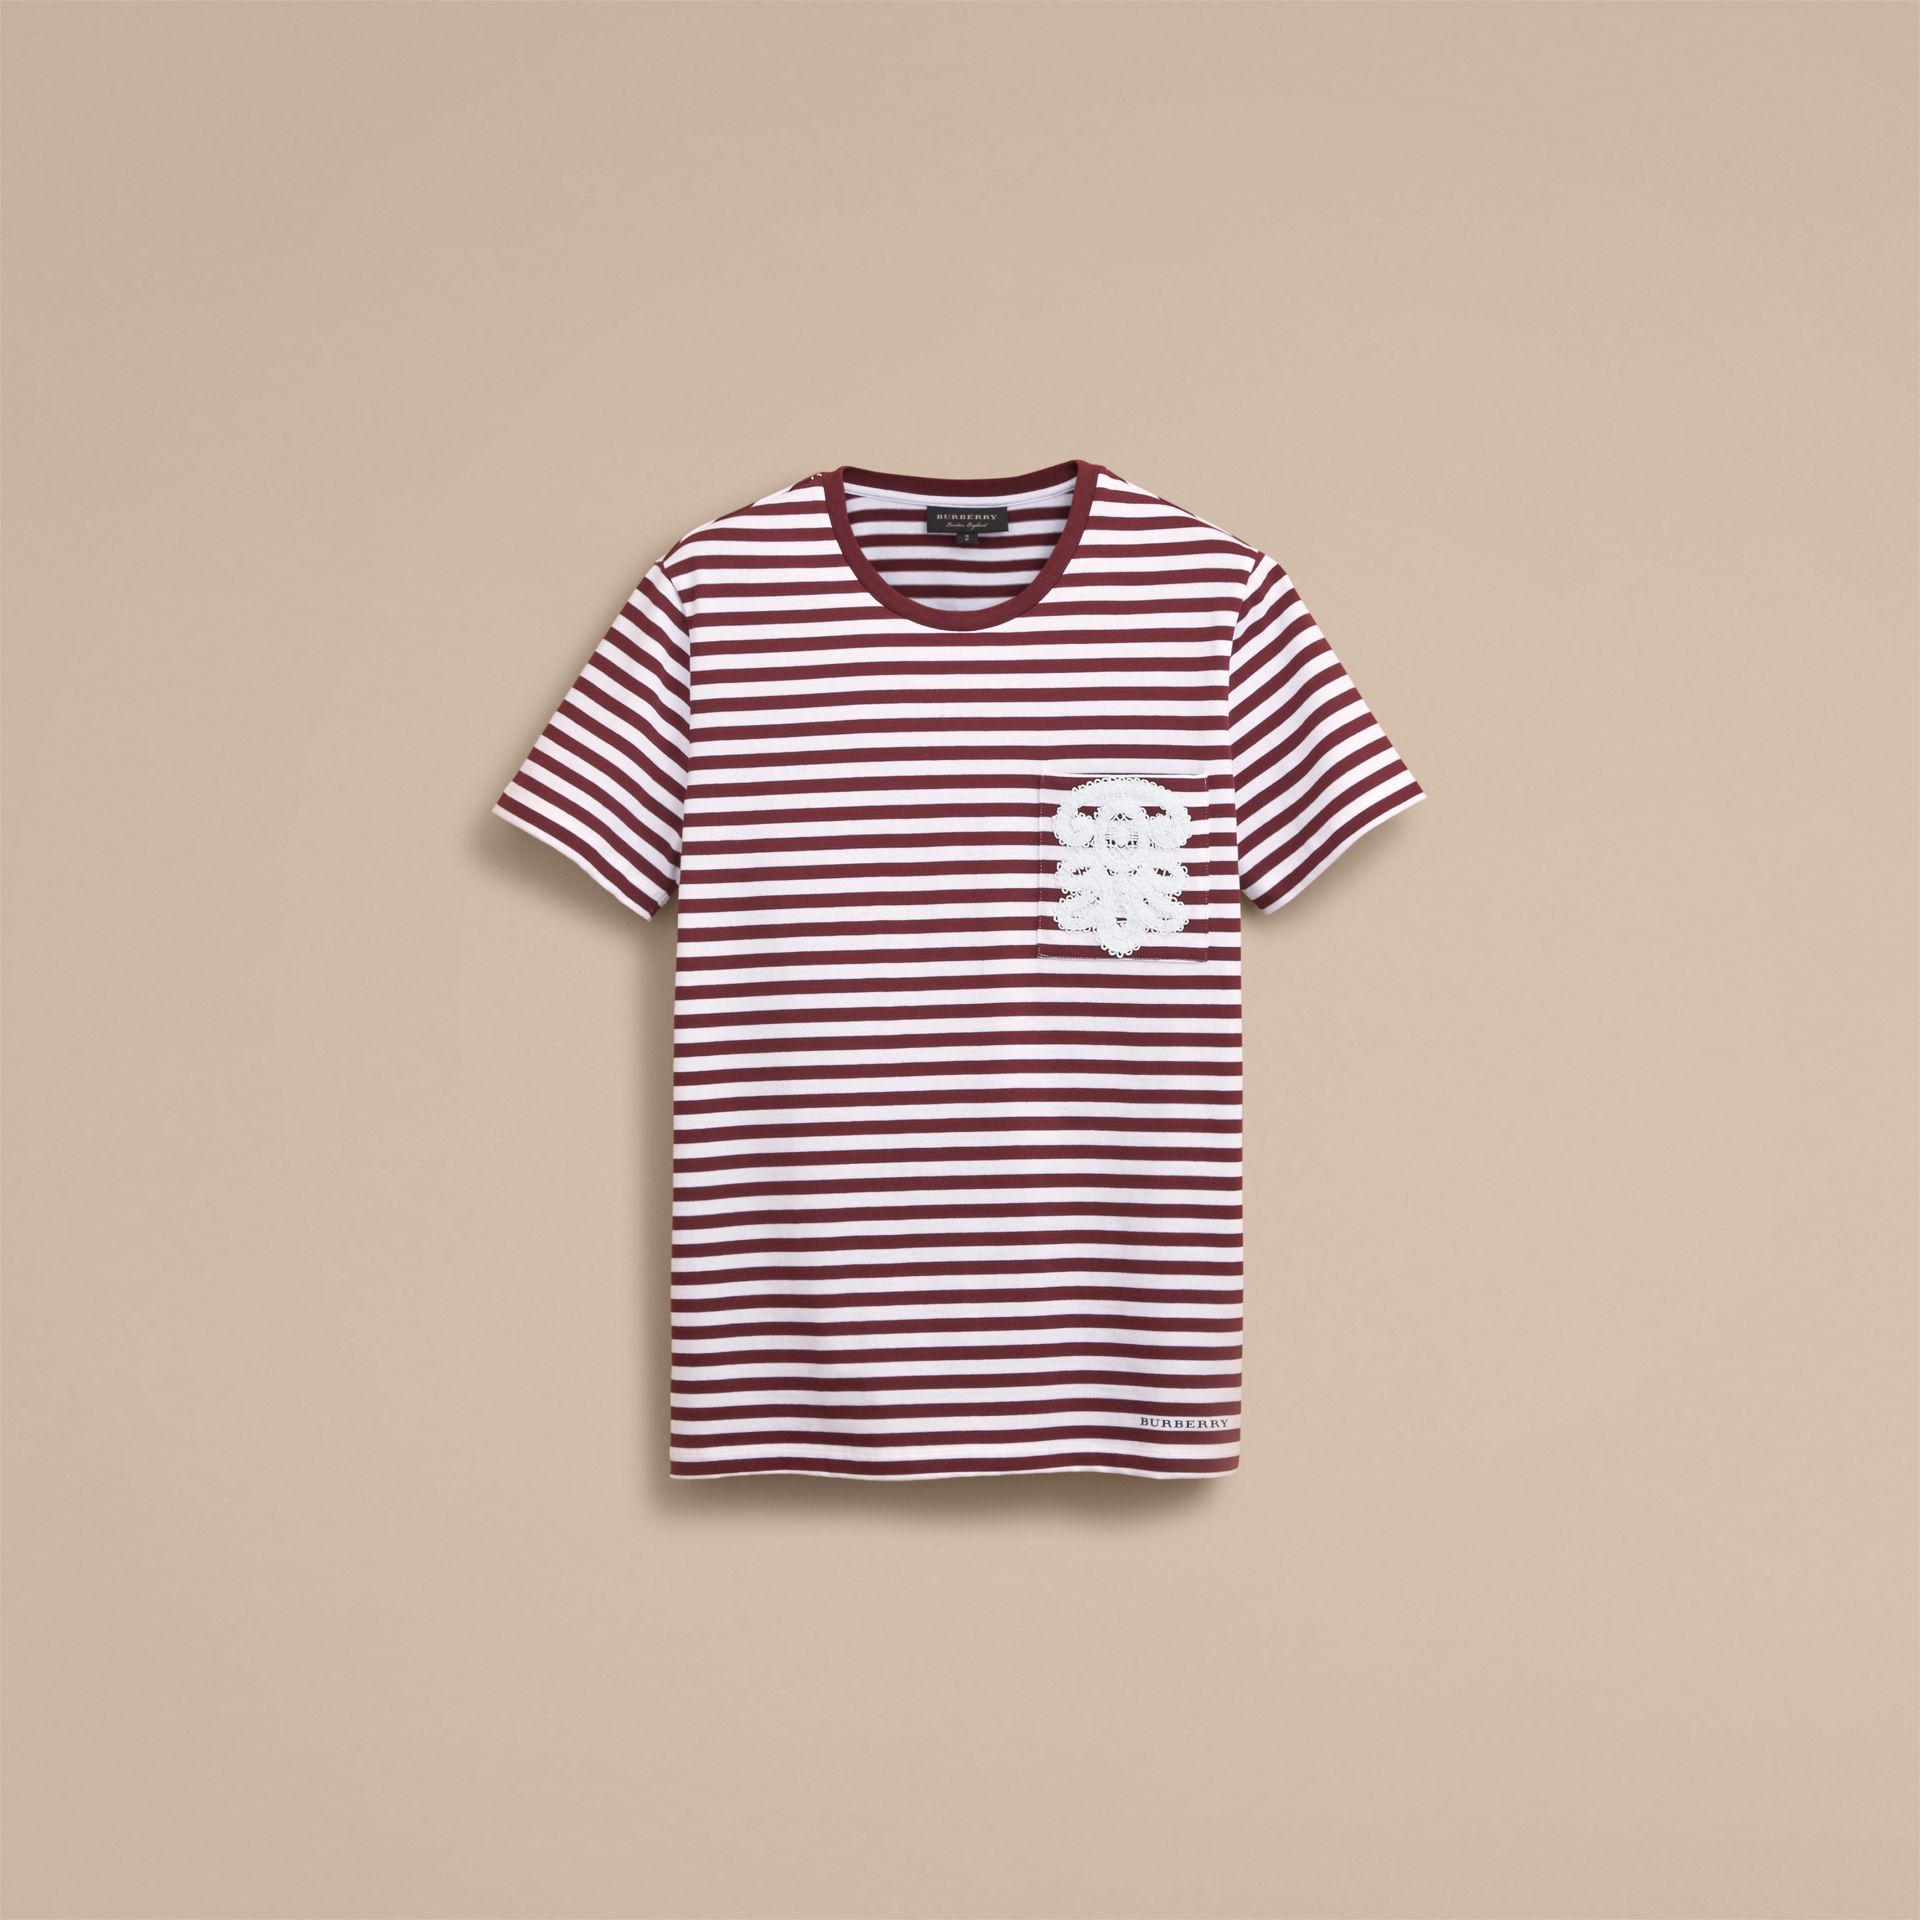 Lace Appliqué Detail Breton Stripe Cotton T-shirt in Burgundy/white - Men | Burberry Canada - gallery image 4